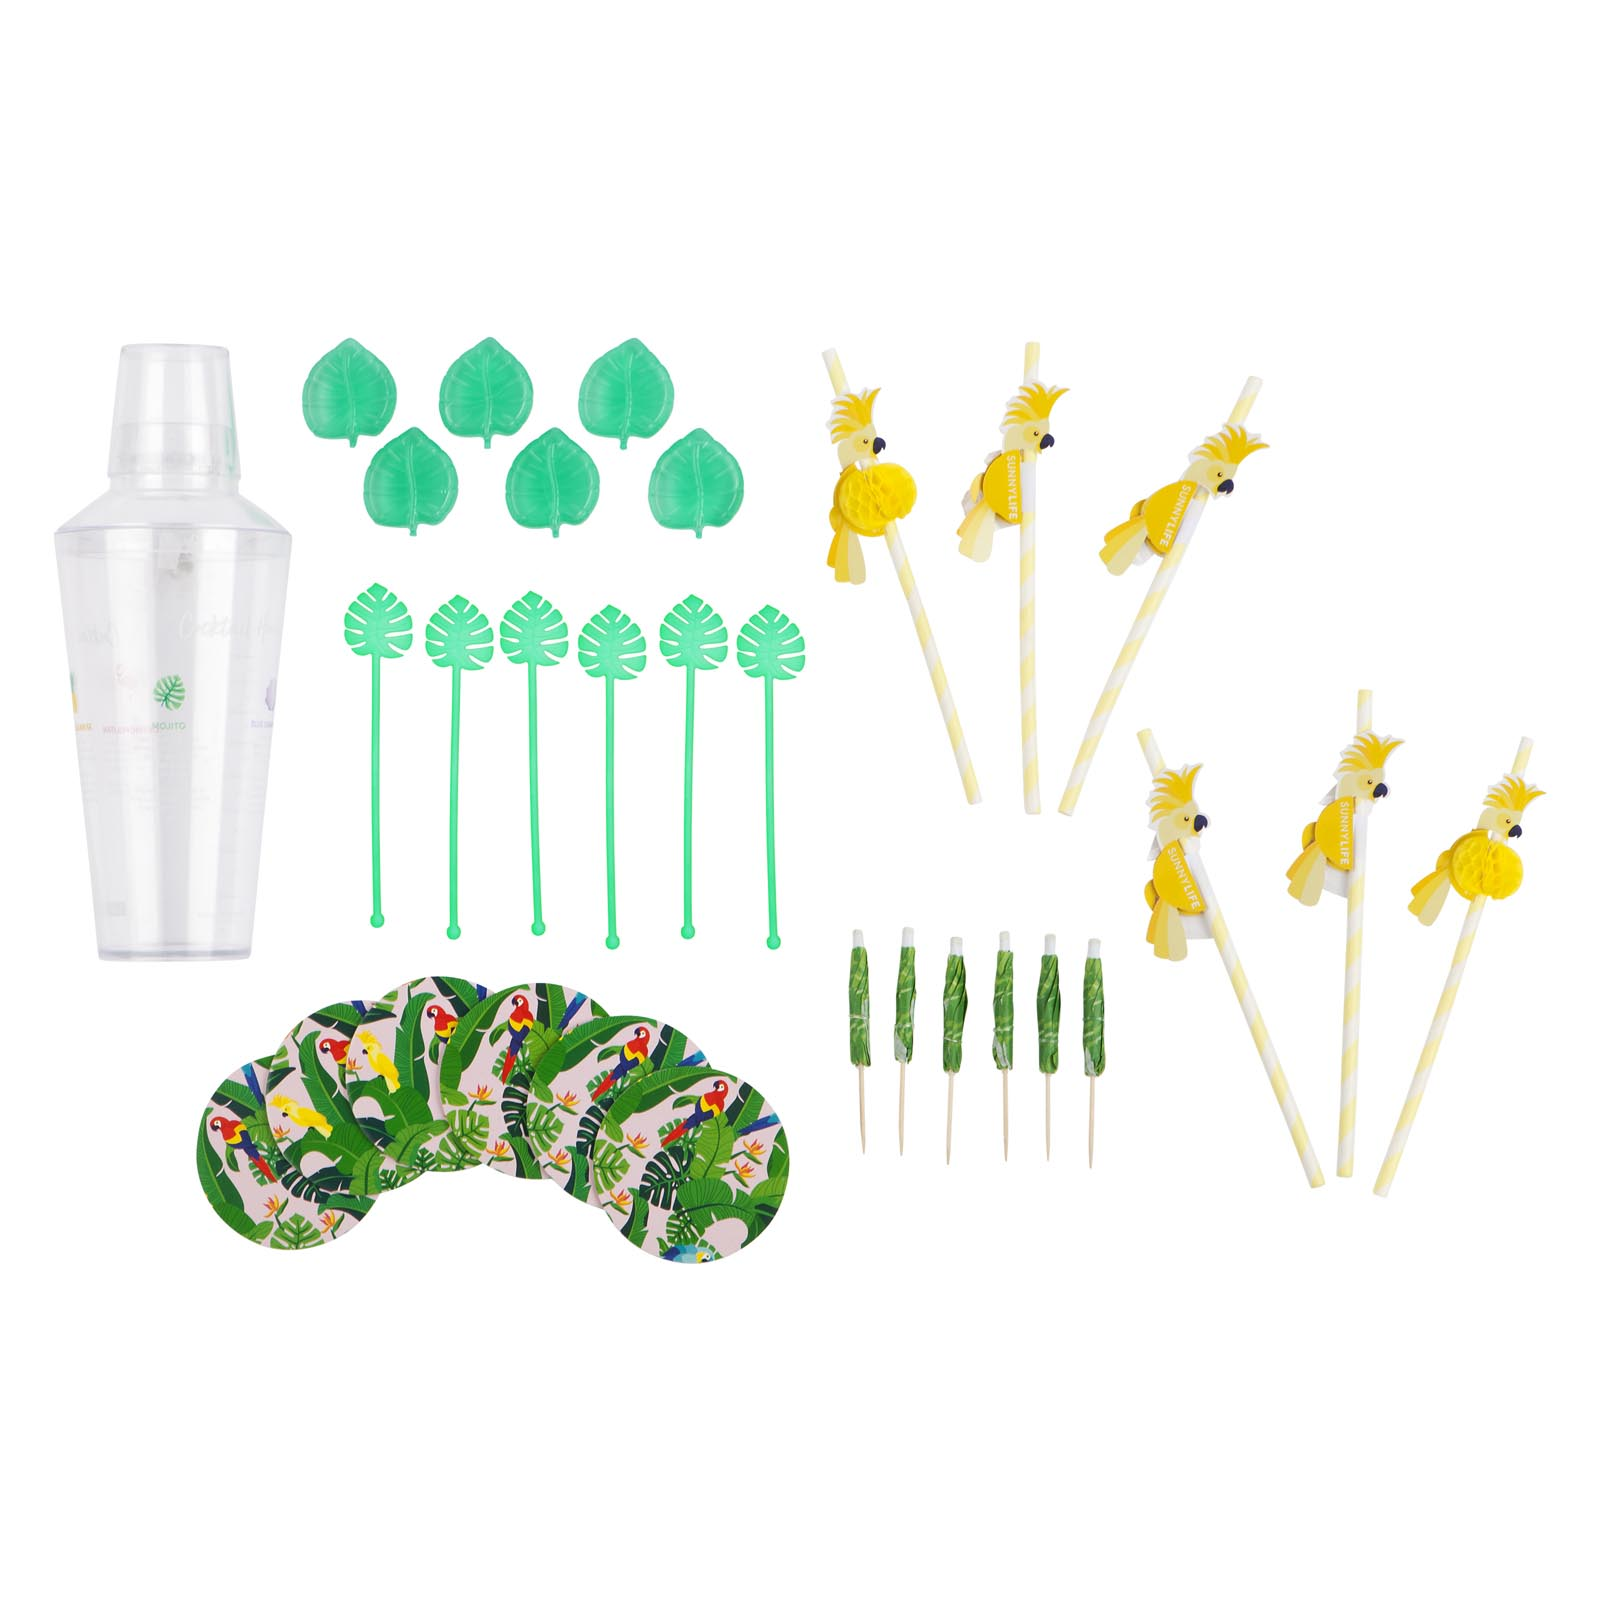 Cocktail party kit